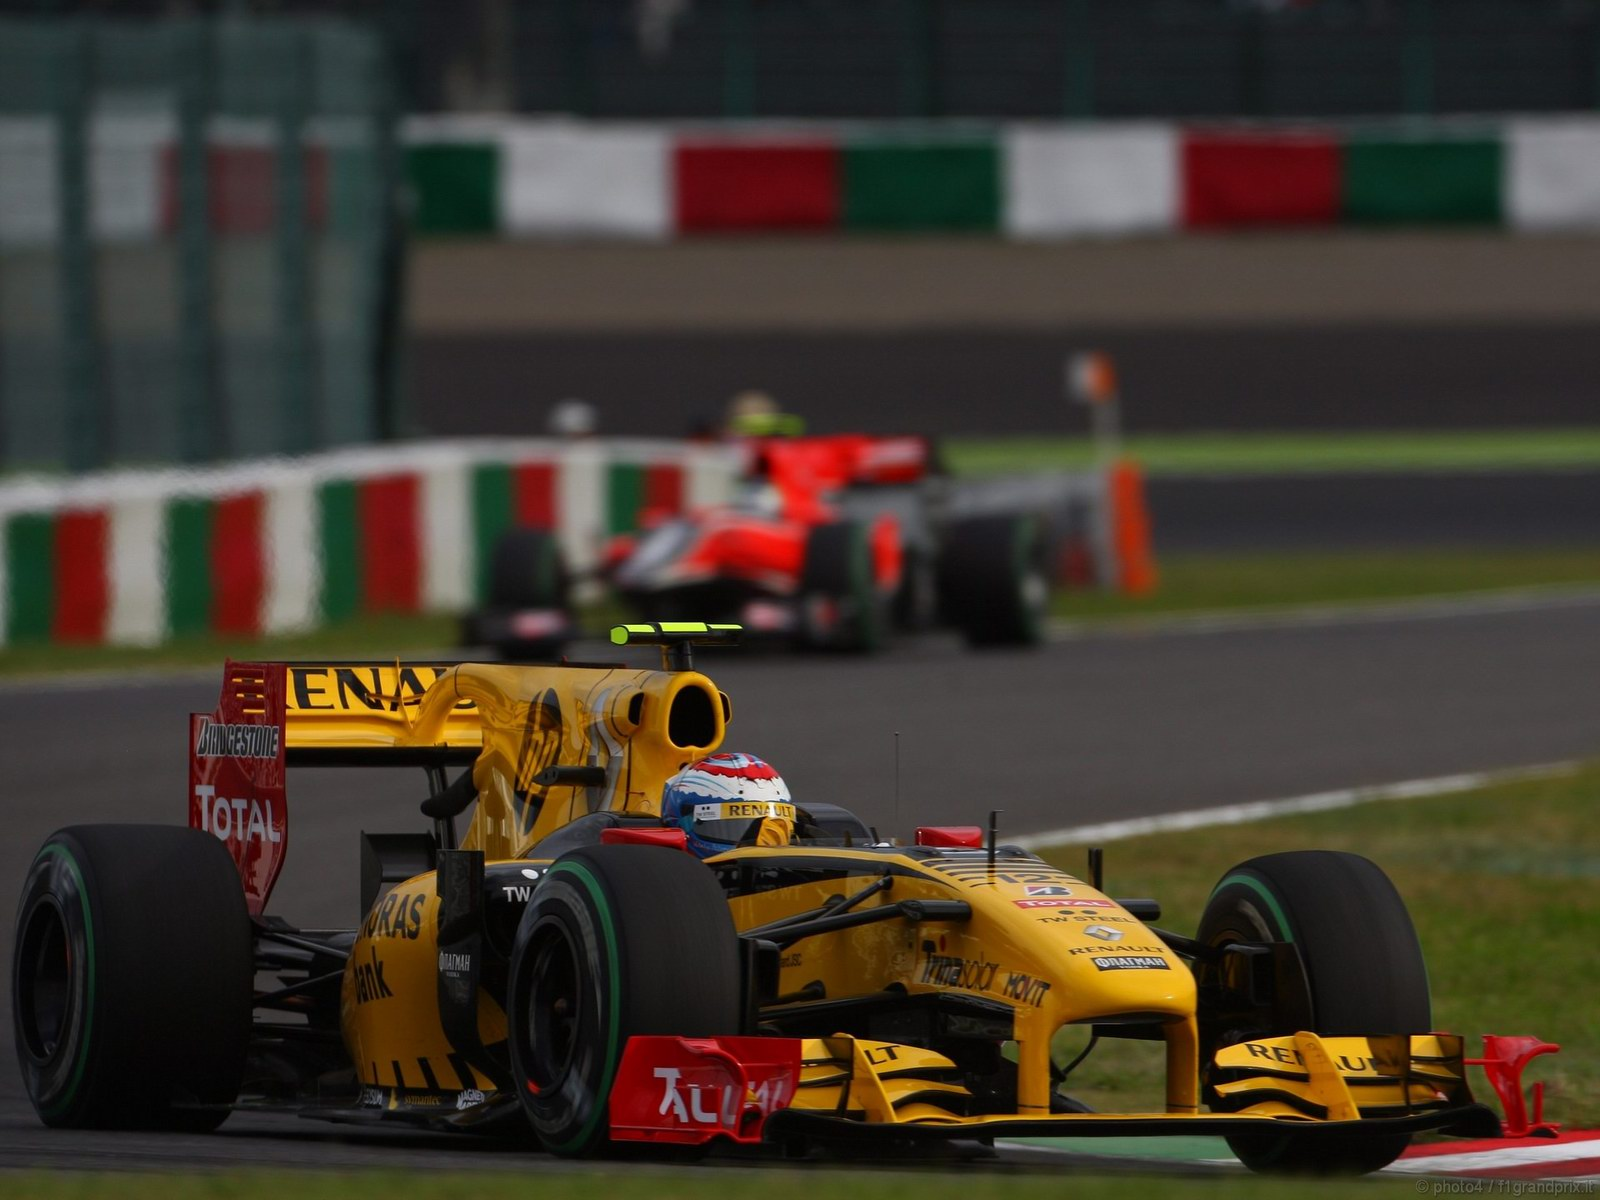 pojazdy - formula1 - gp_giappone_wallpapers_000059